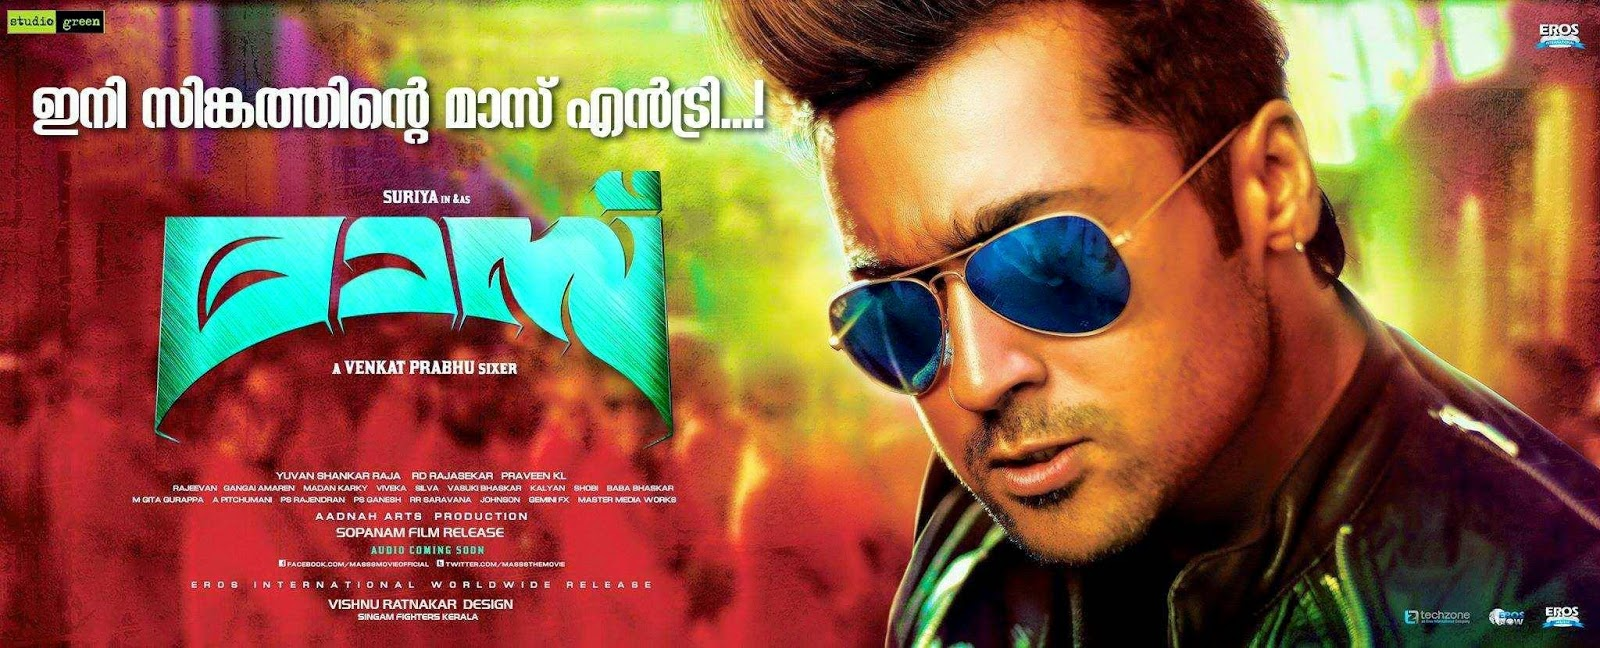 Surya-in-Masss-official-malayalam-logo-images